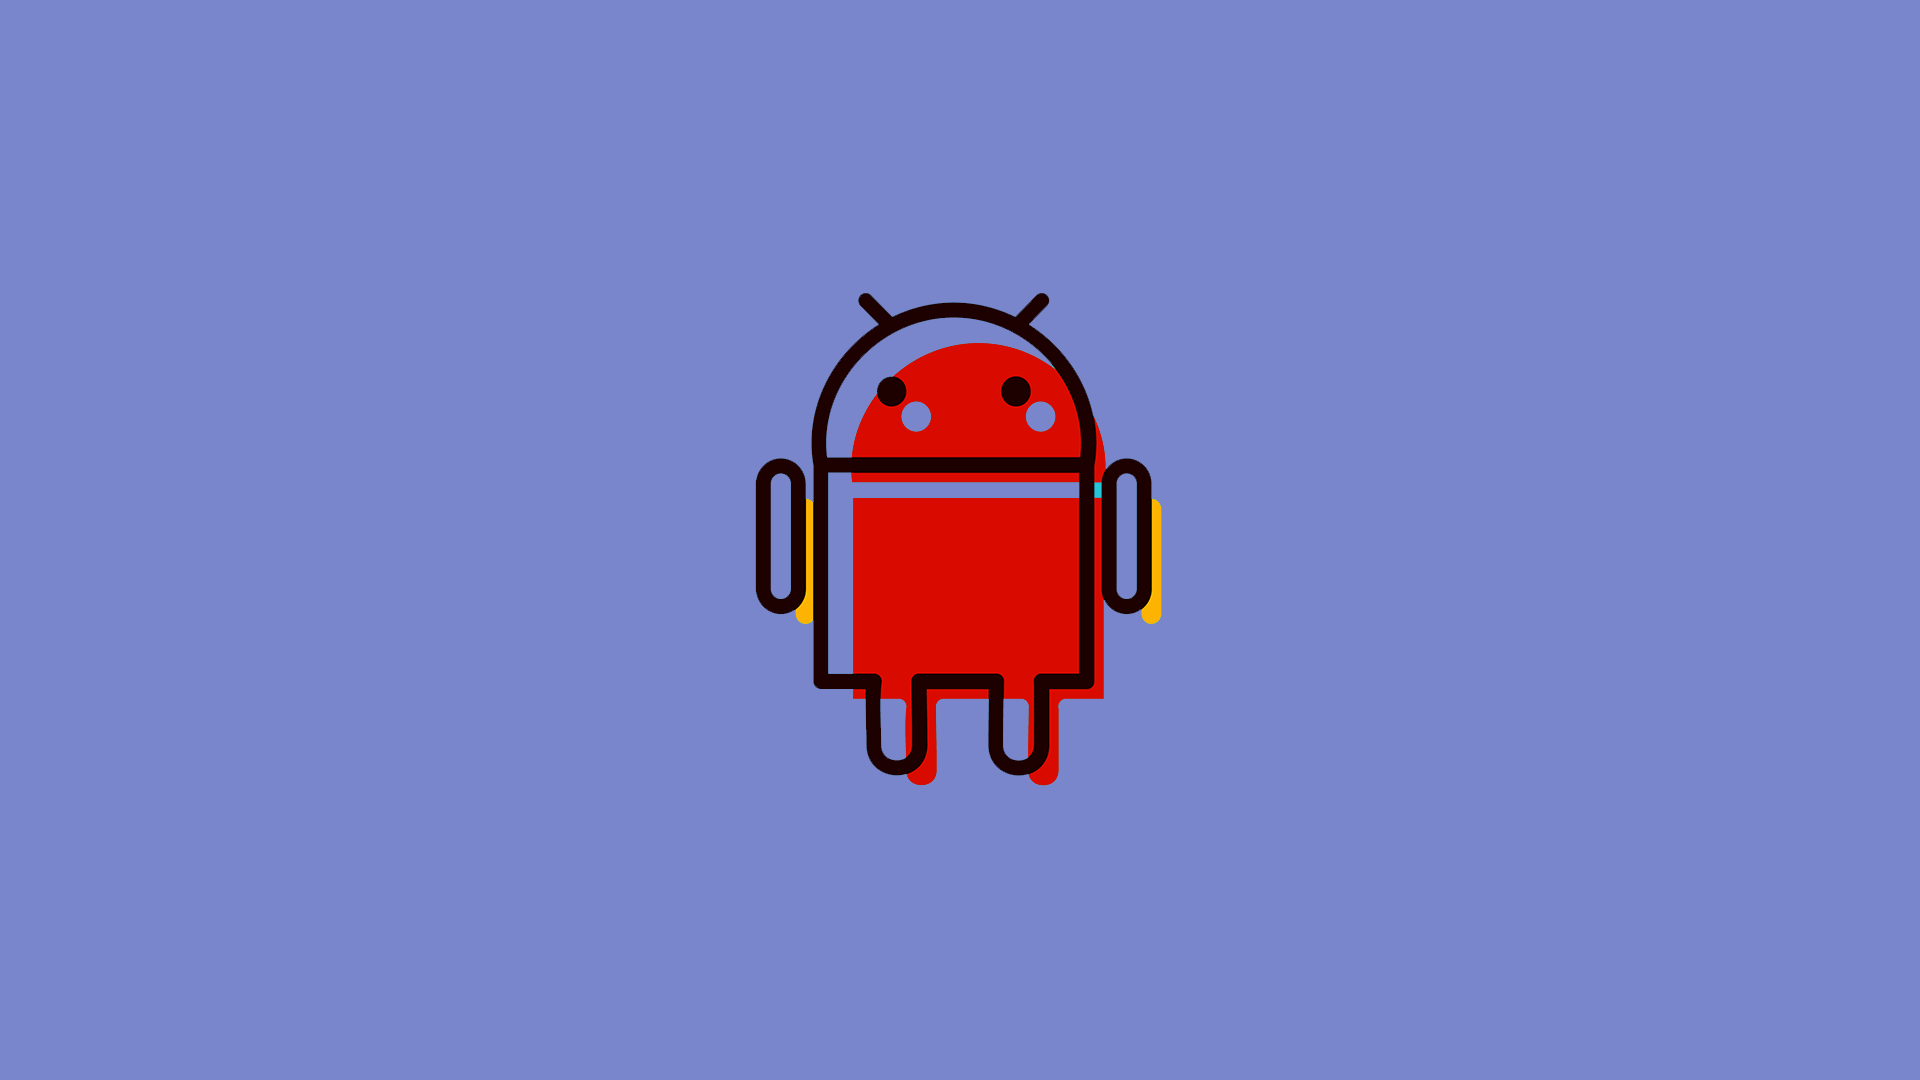 Downgrade to an Older Version of Android